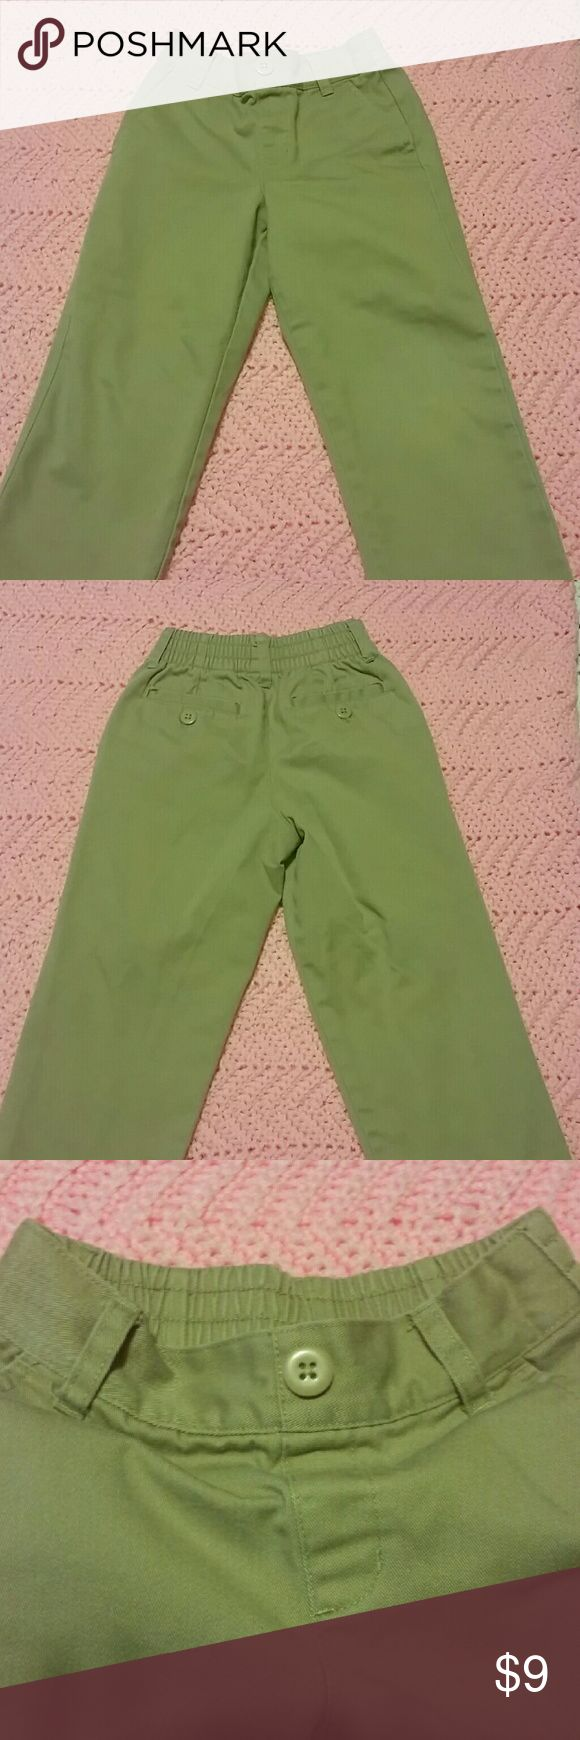 School uniform pants Khaki pants for school uniform. Pull on style with elastic waistband on back. Four pockets total (two front and two back) and belt loops. Great condition, no rips or stains. Gender neutral. Austin Clothing  Bottoms